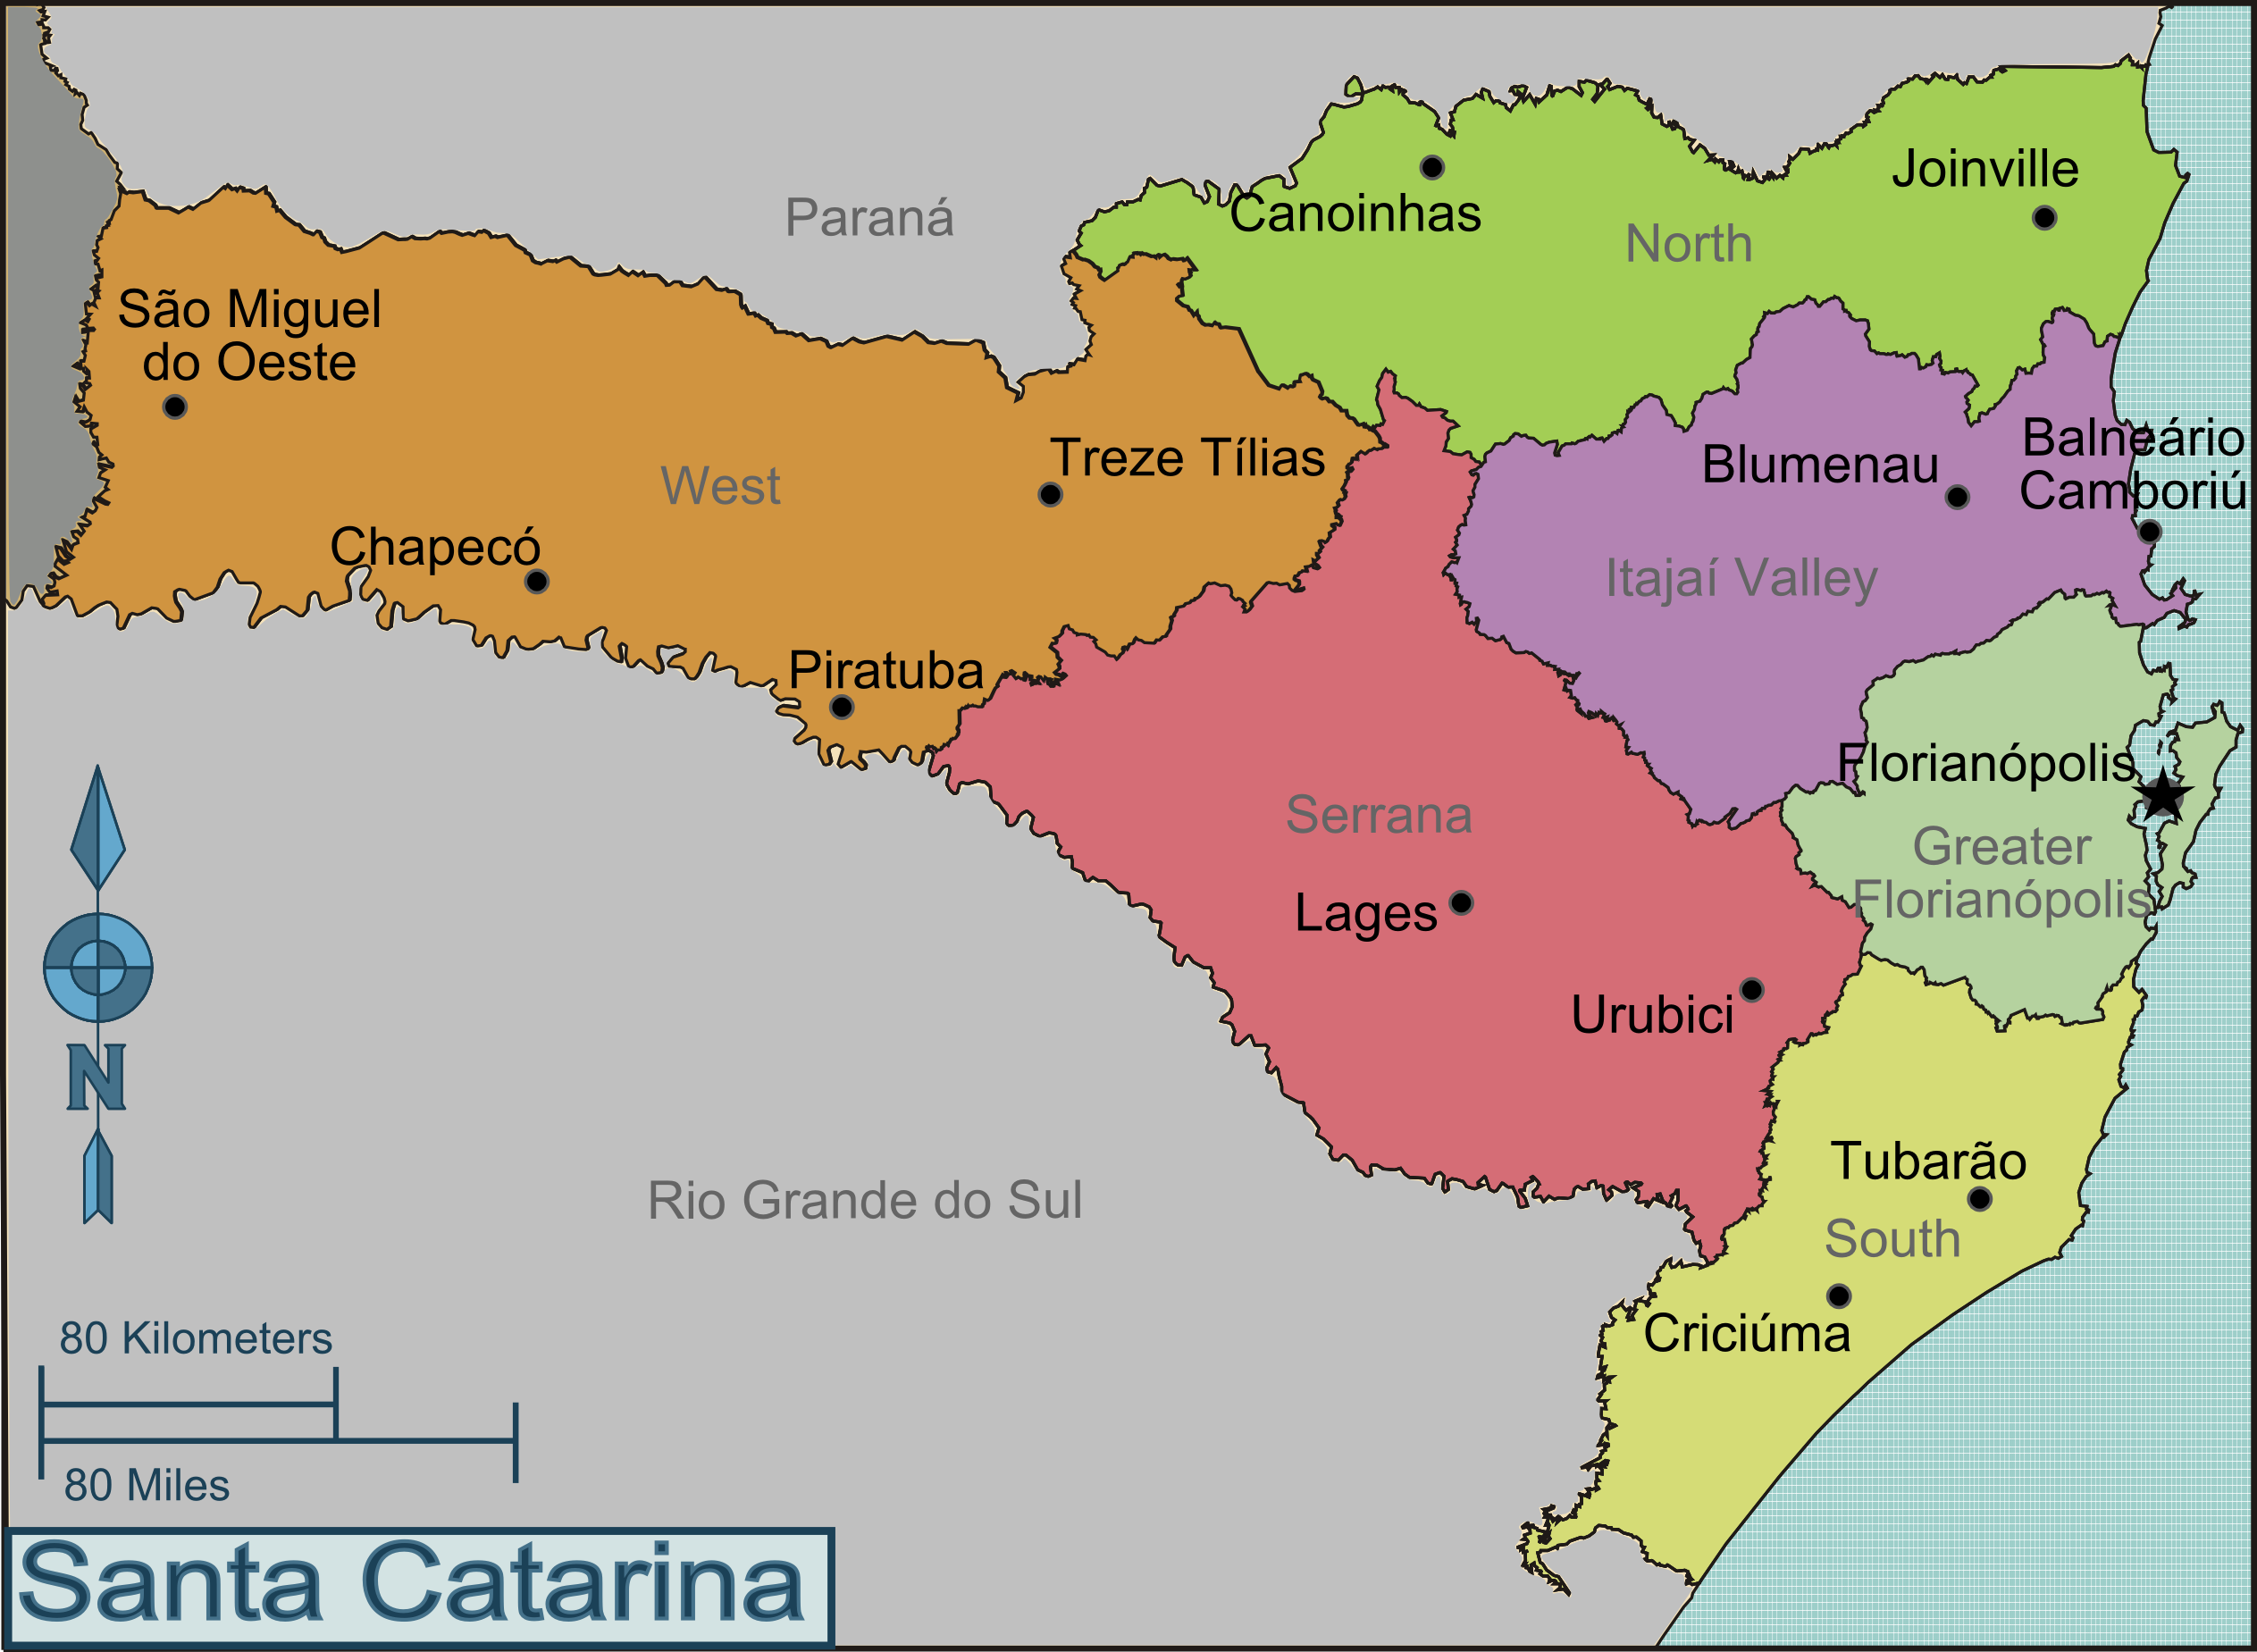 FileRegions Of Santa Catarinapng Wikimedia Commons - Lages map